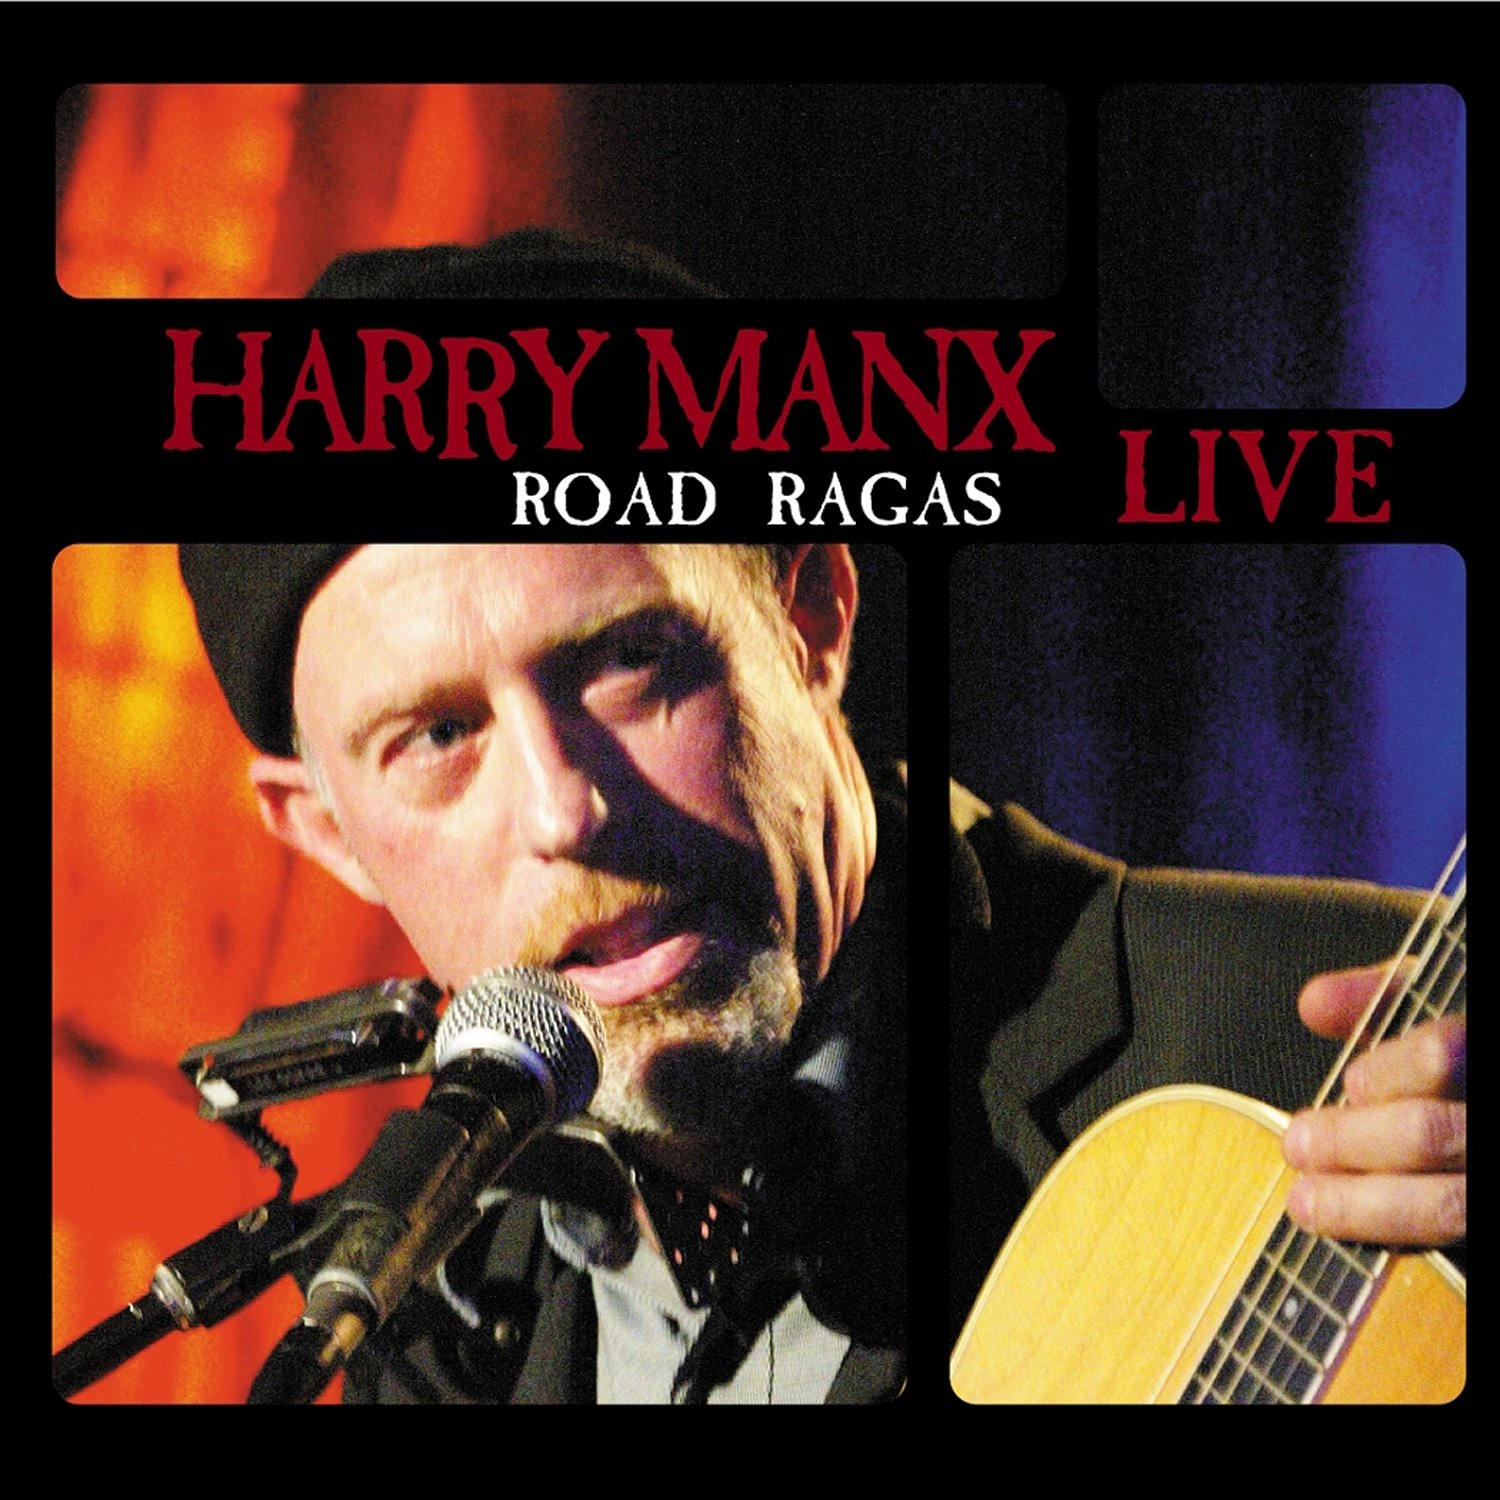 Road Ragas - Harry Manx Live